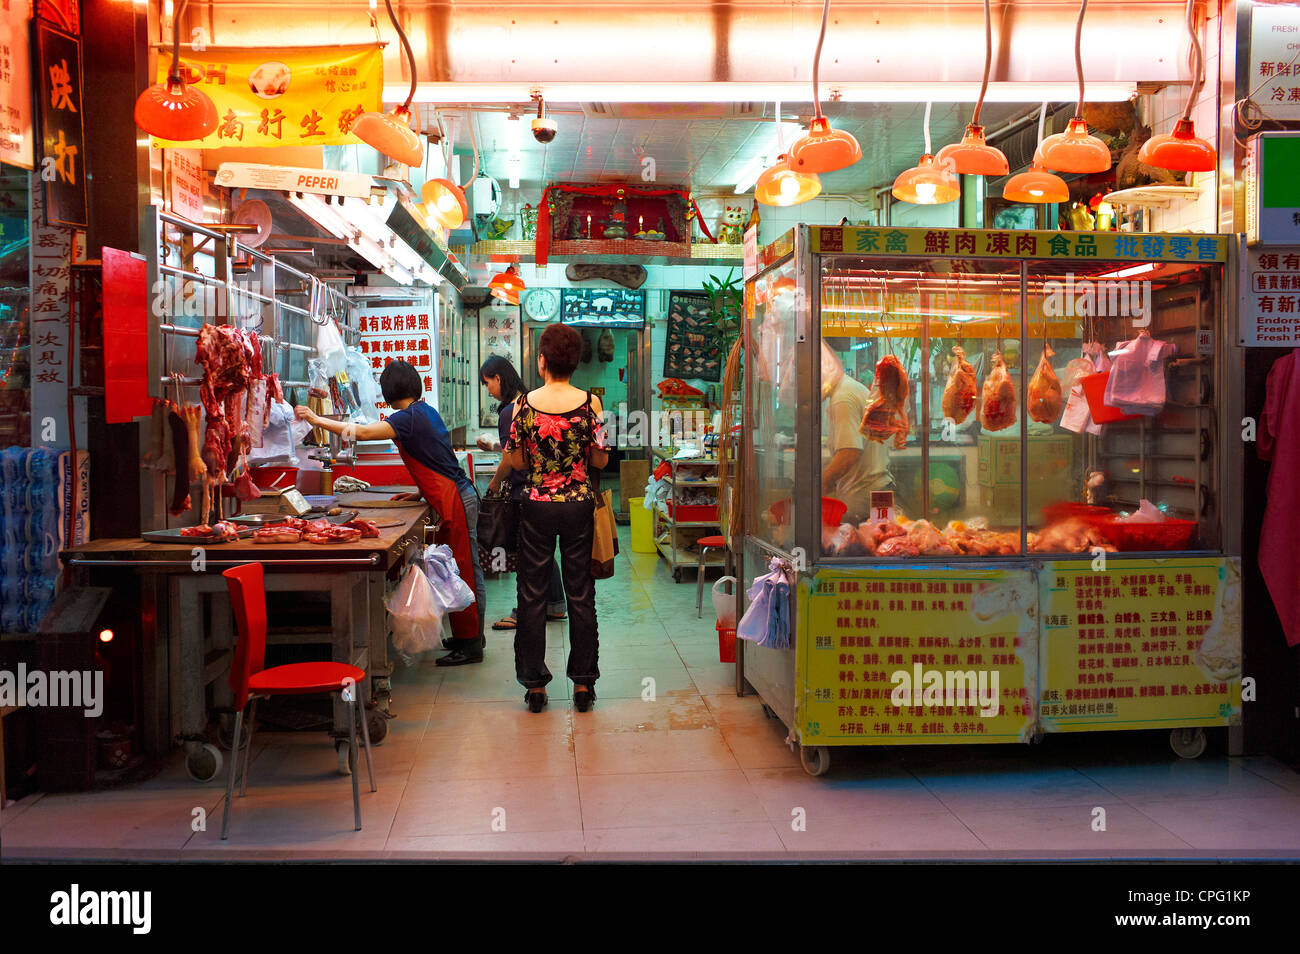 Street vendors at an outdoor wet market in Central Hong Kong, China. September 2011. - Stock Image